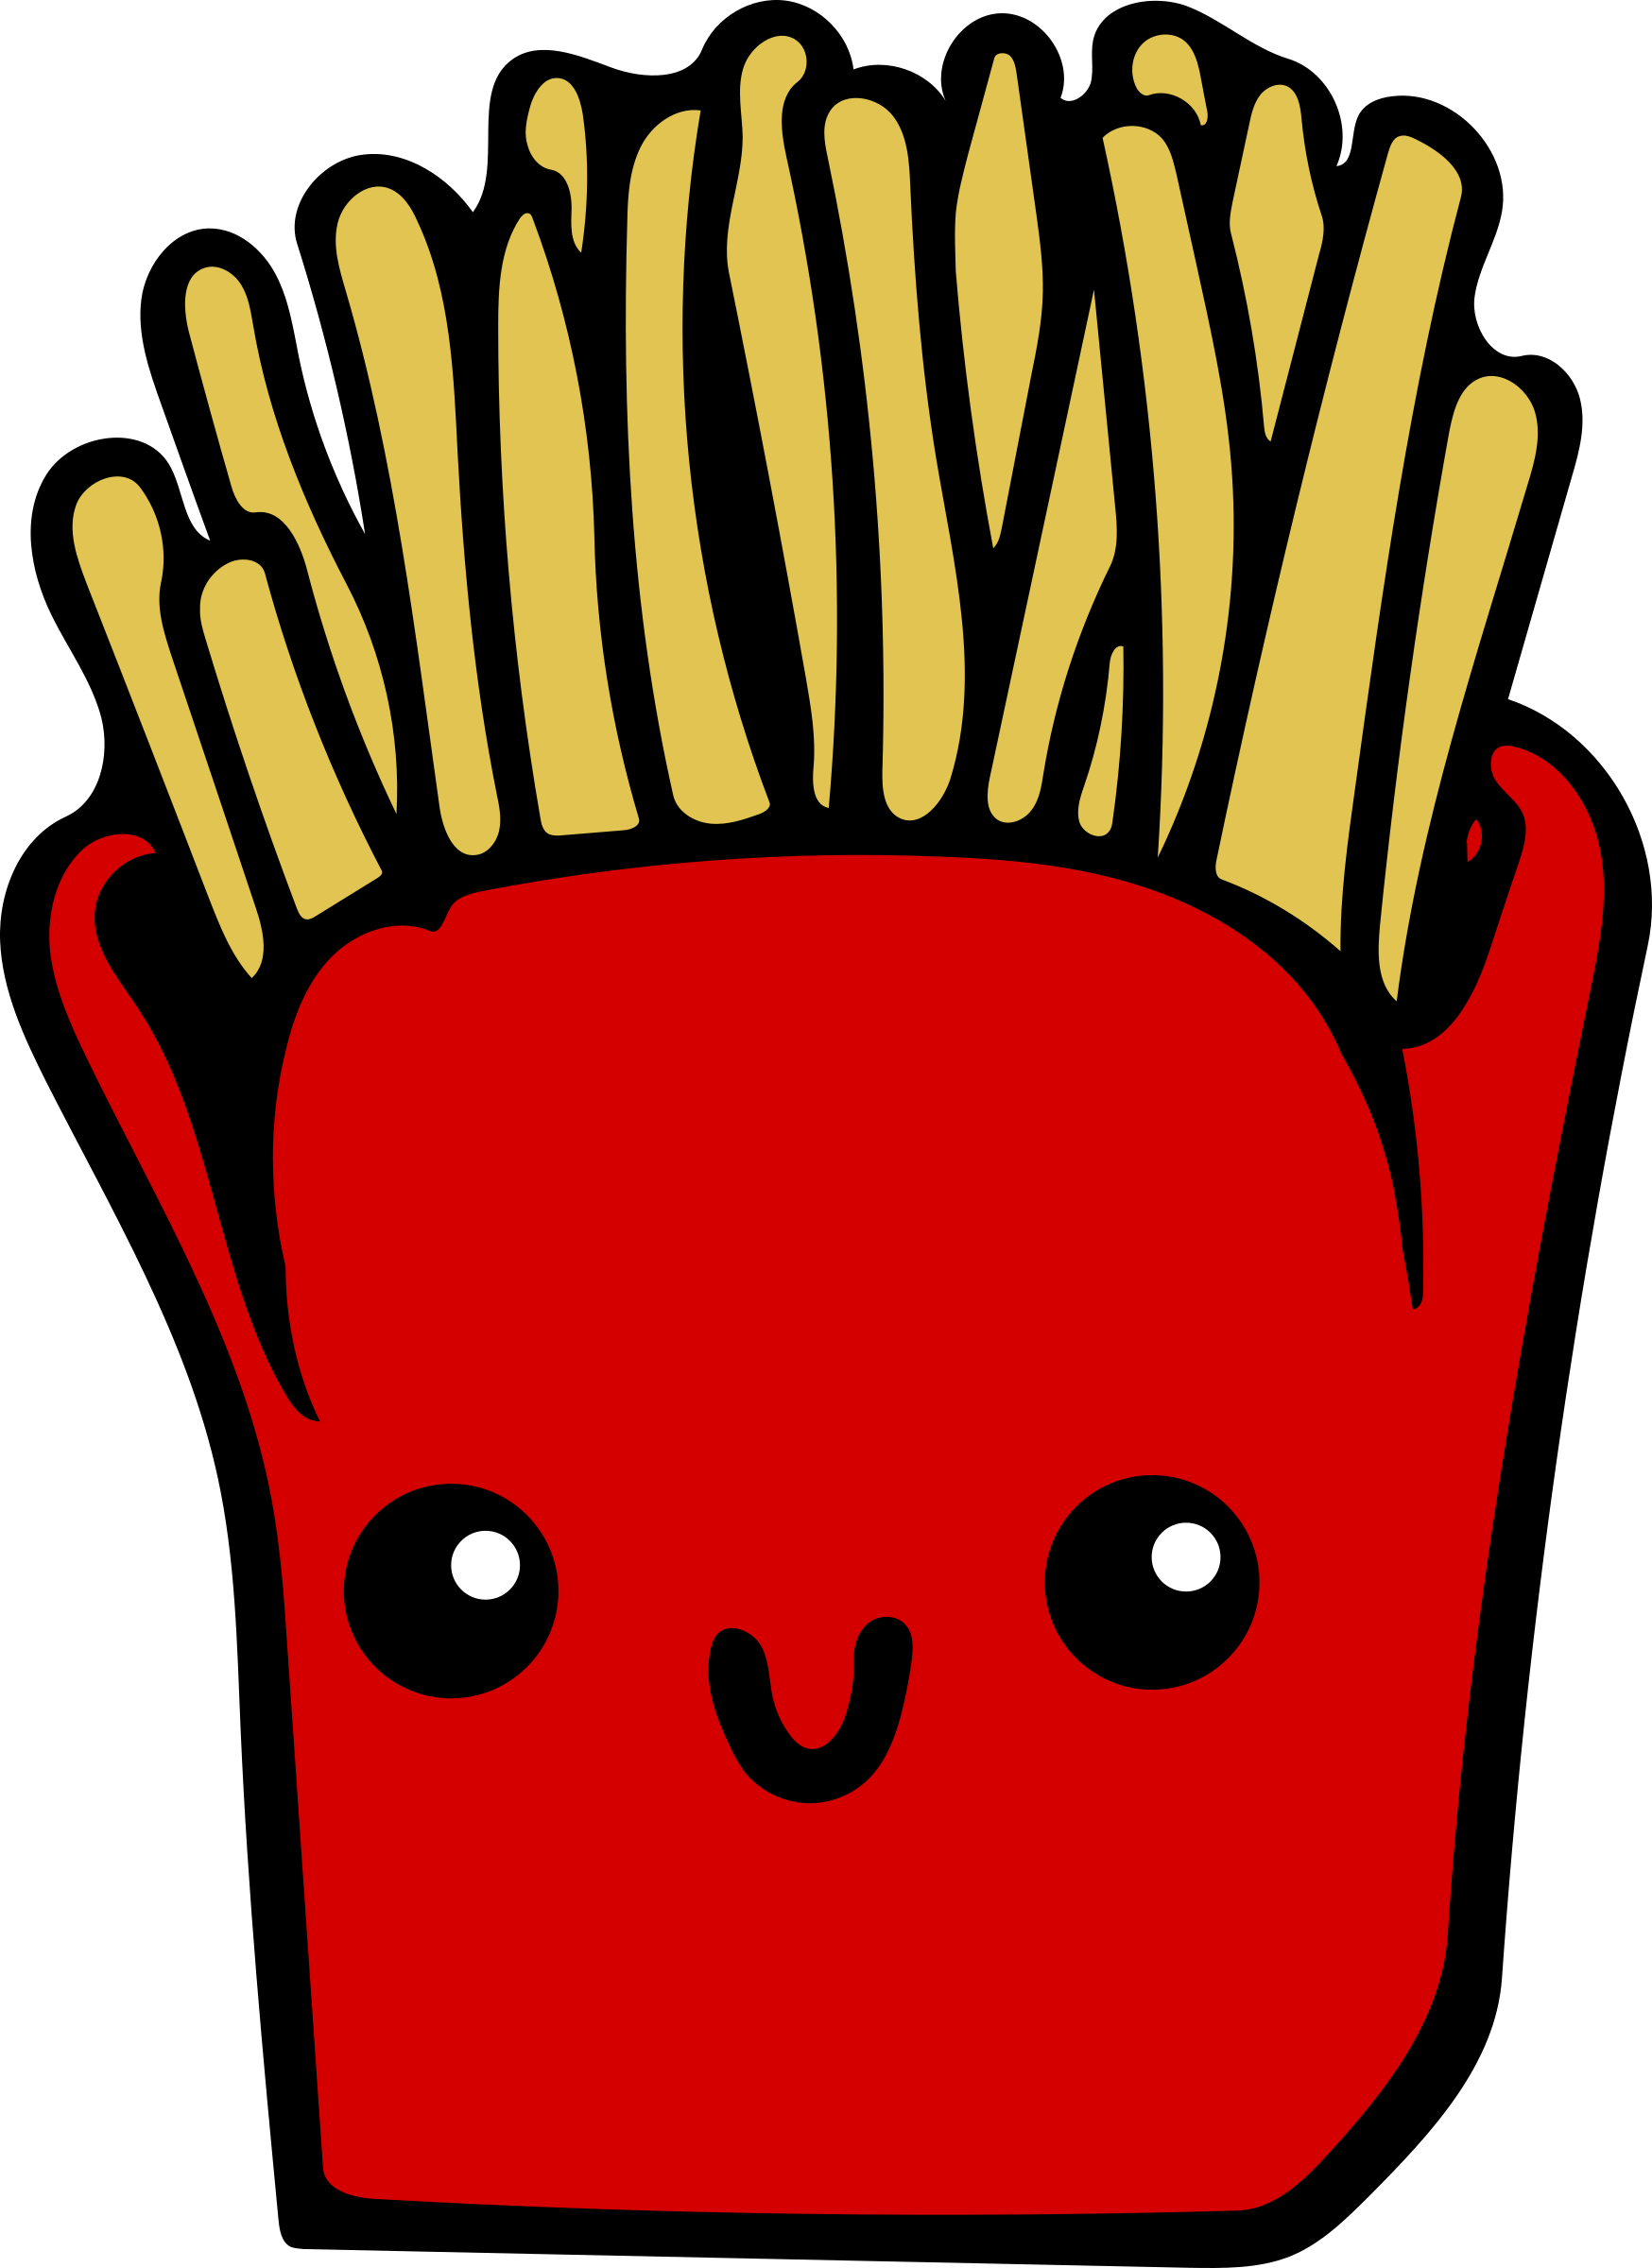 Image result for fries free clipart